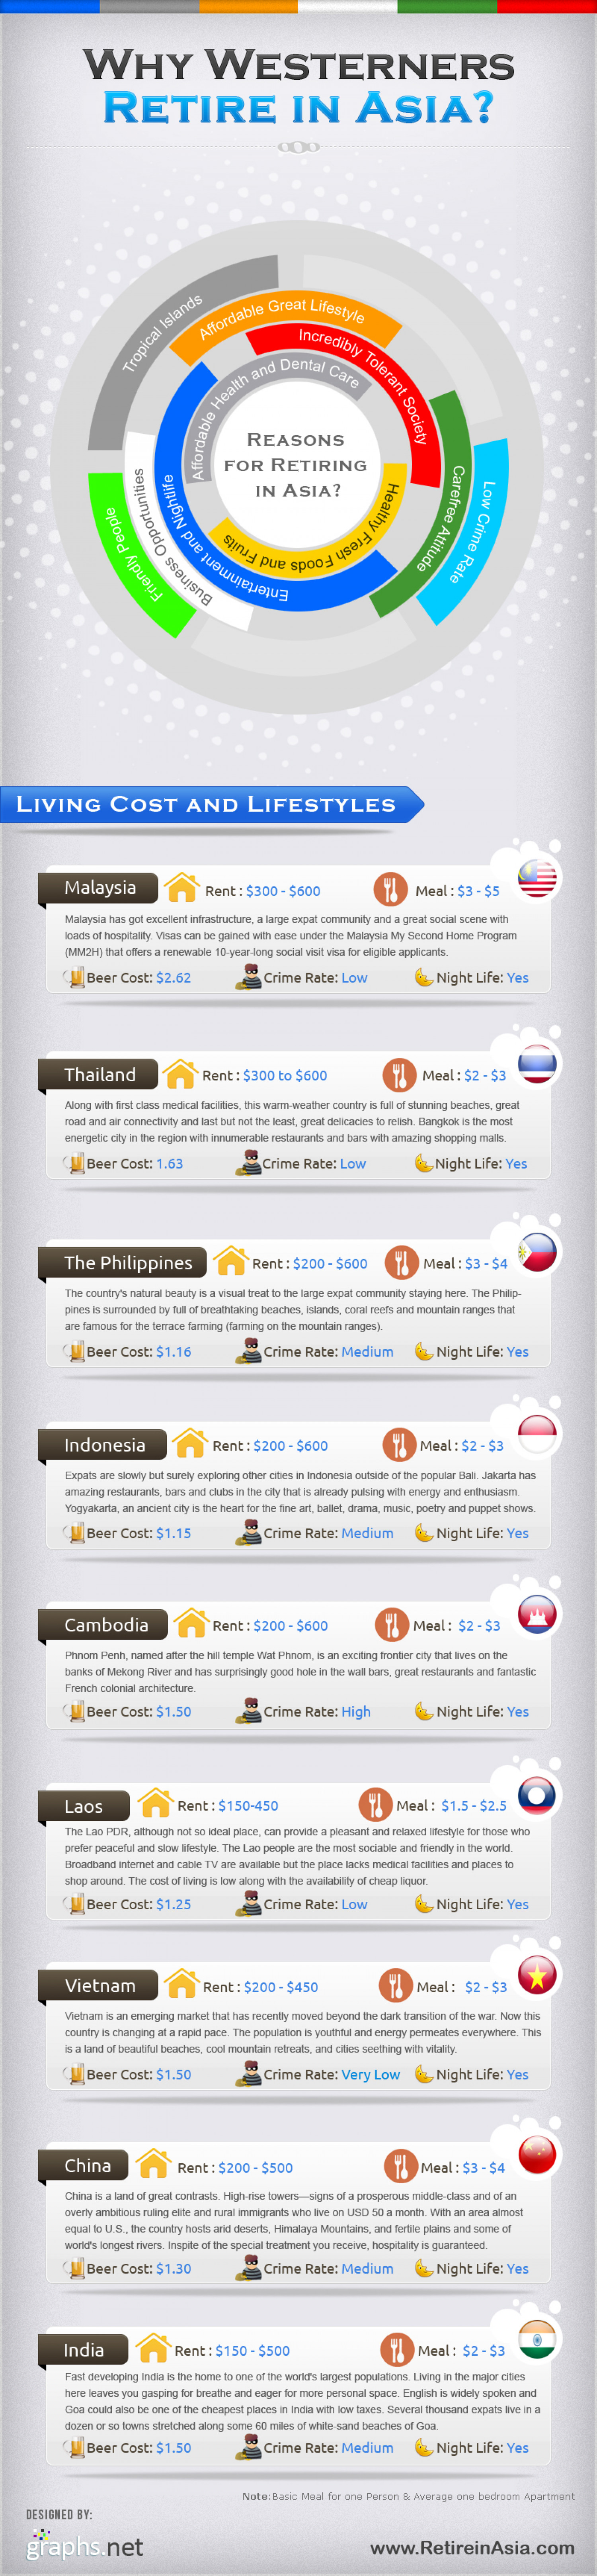 Why Westerners Retire in Asia? (Info-graphic) Infographic